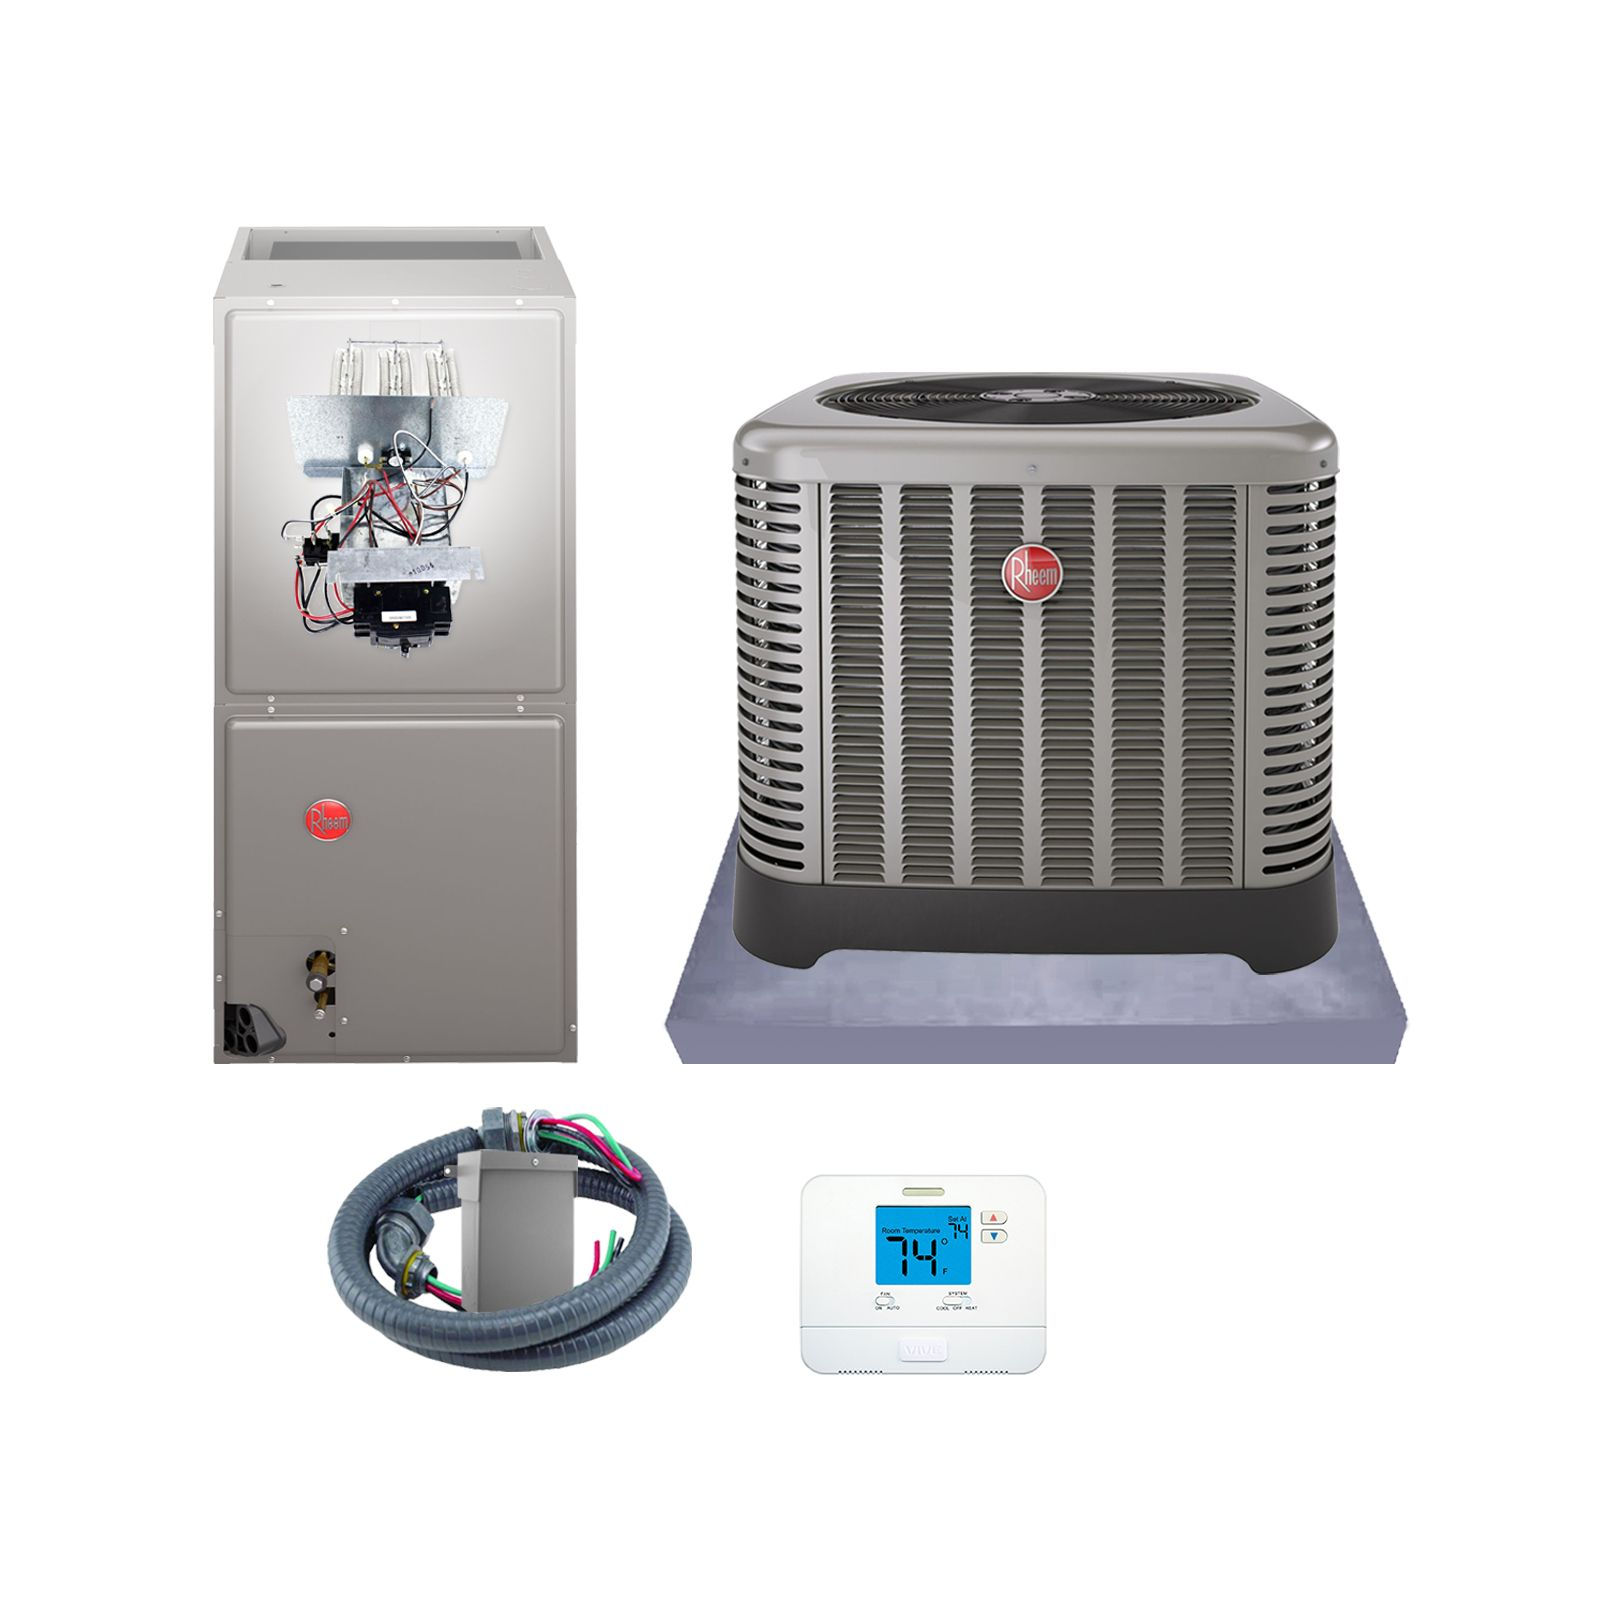 Rheem (AHRI 7943714) 5 Ton, 16 SEER/13 EER Classic Series, Air Conditioner Split System and Install Kit